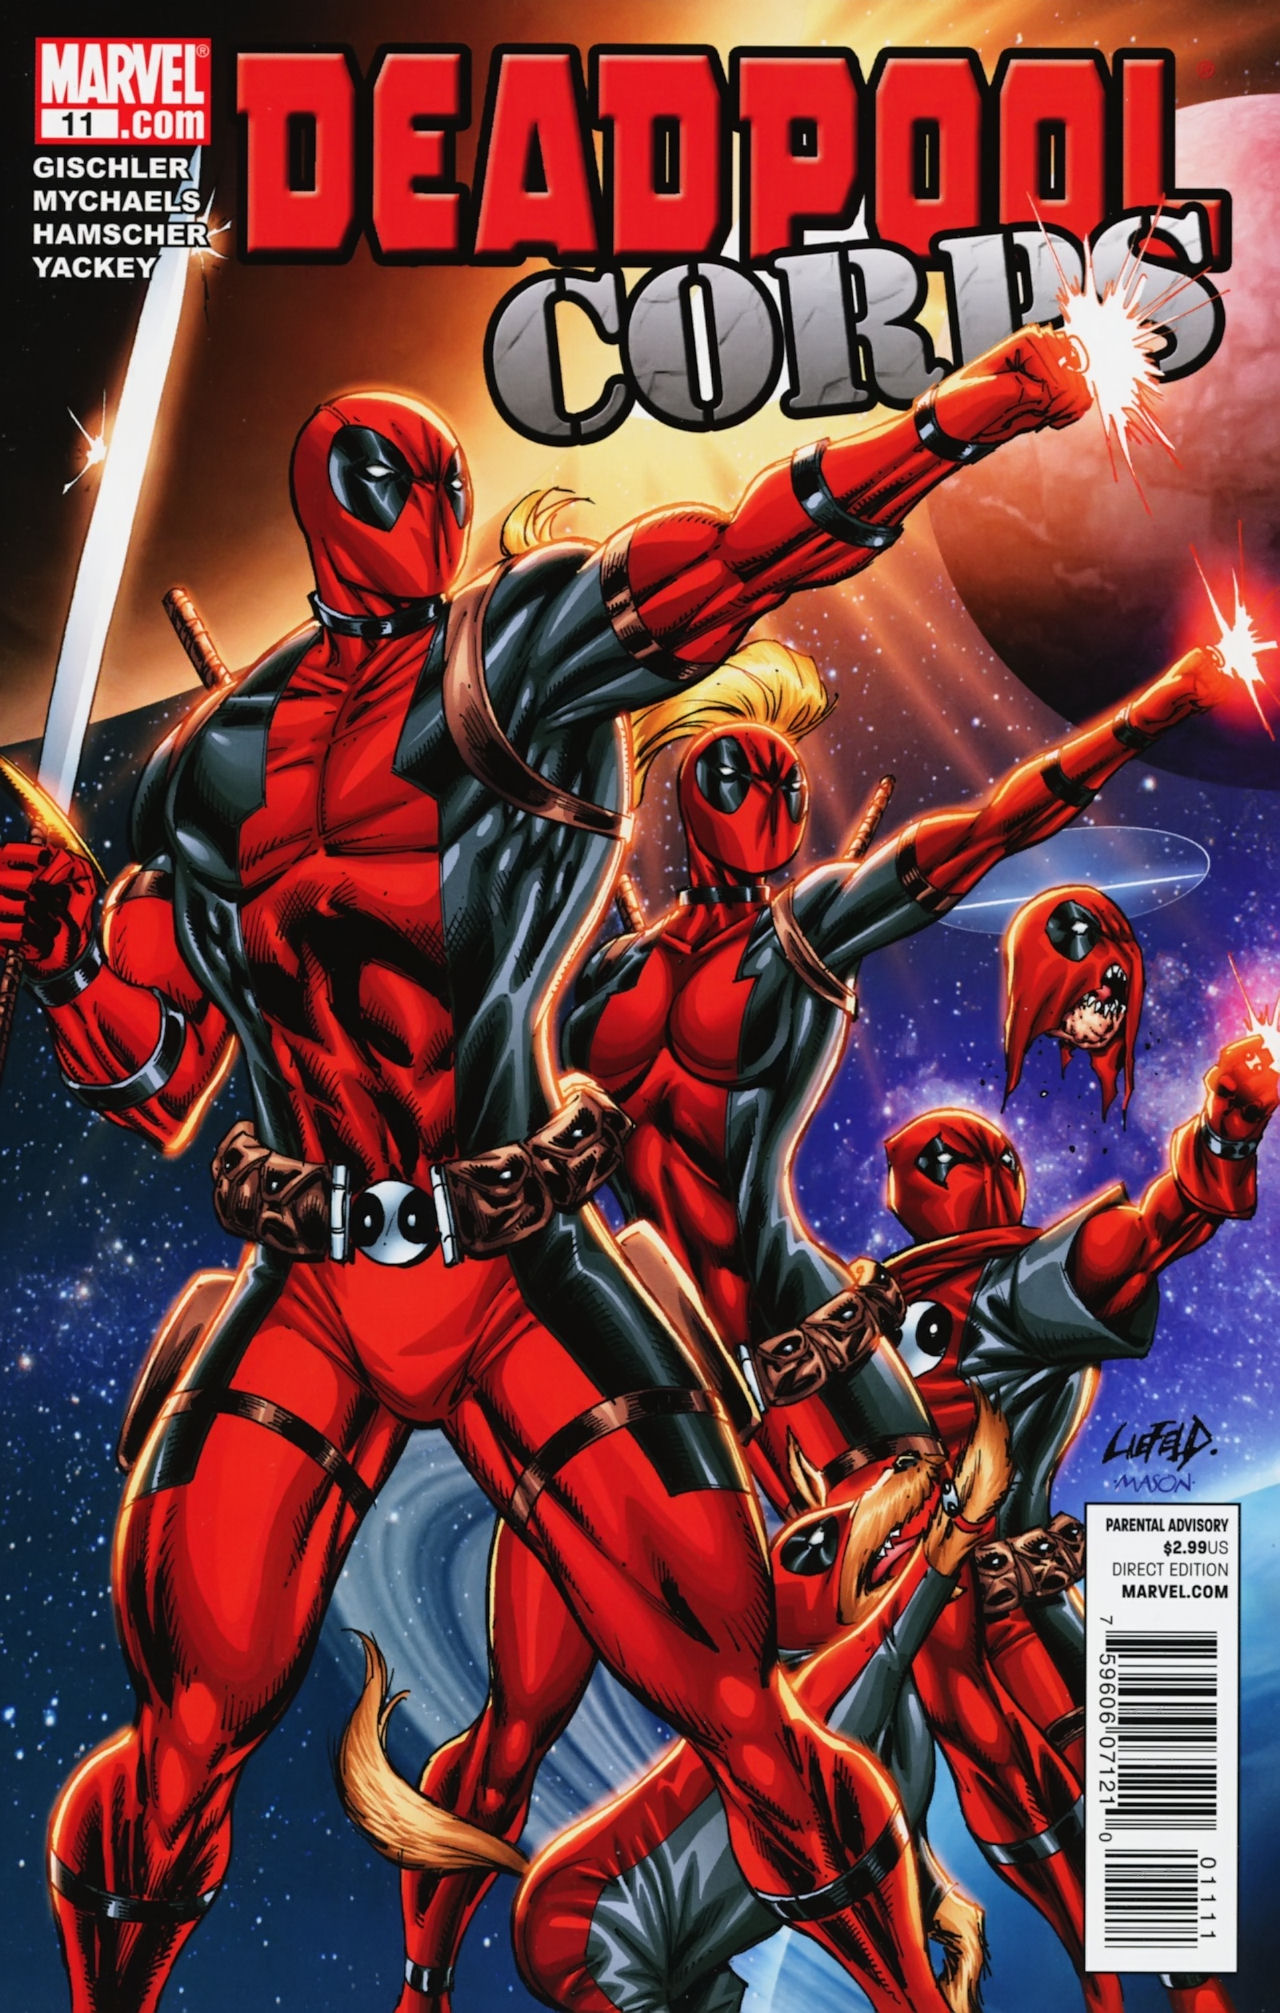 Deadpool Corps (2010) 11 Page 1